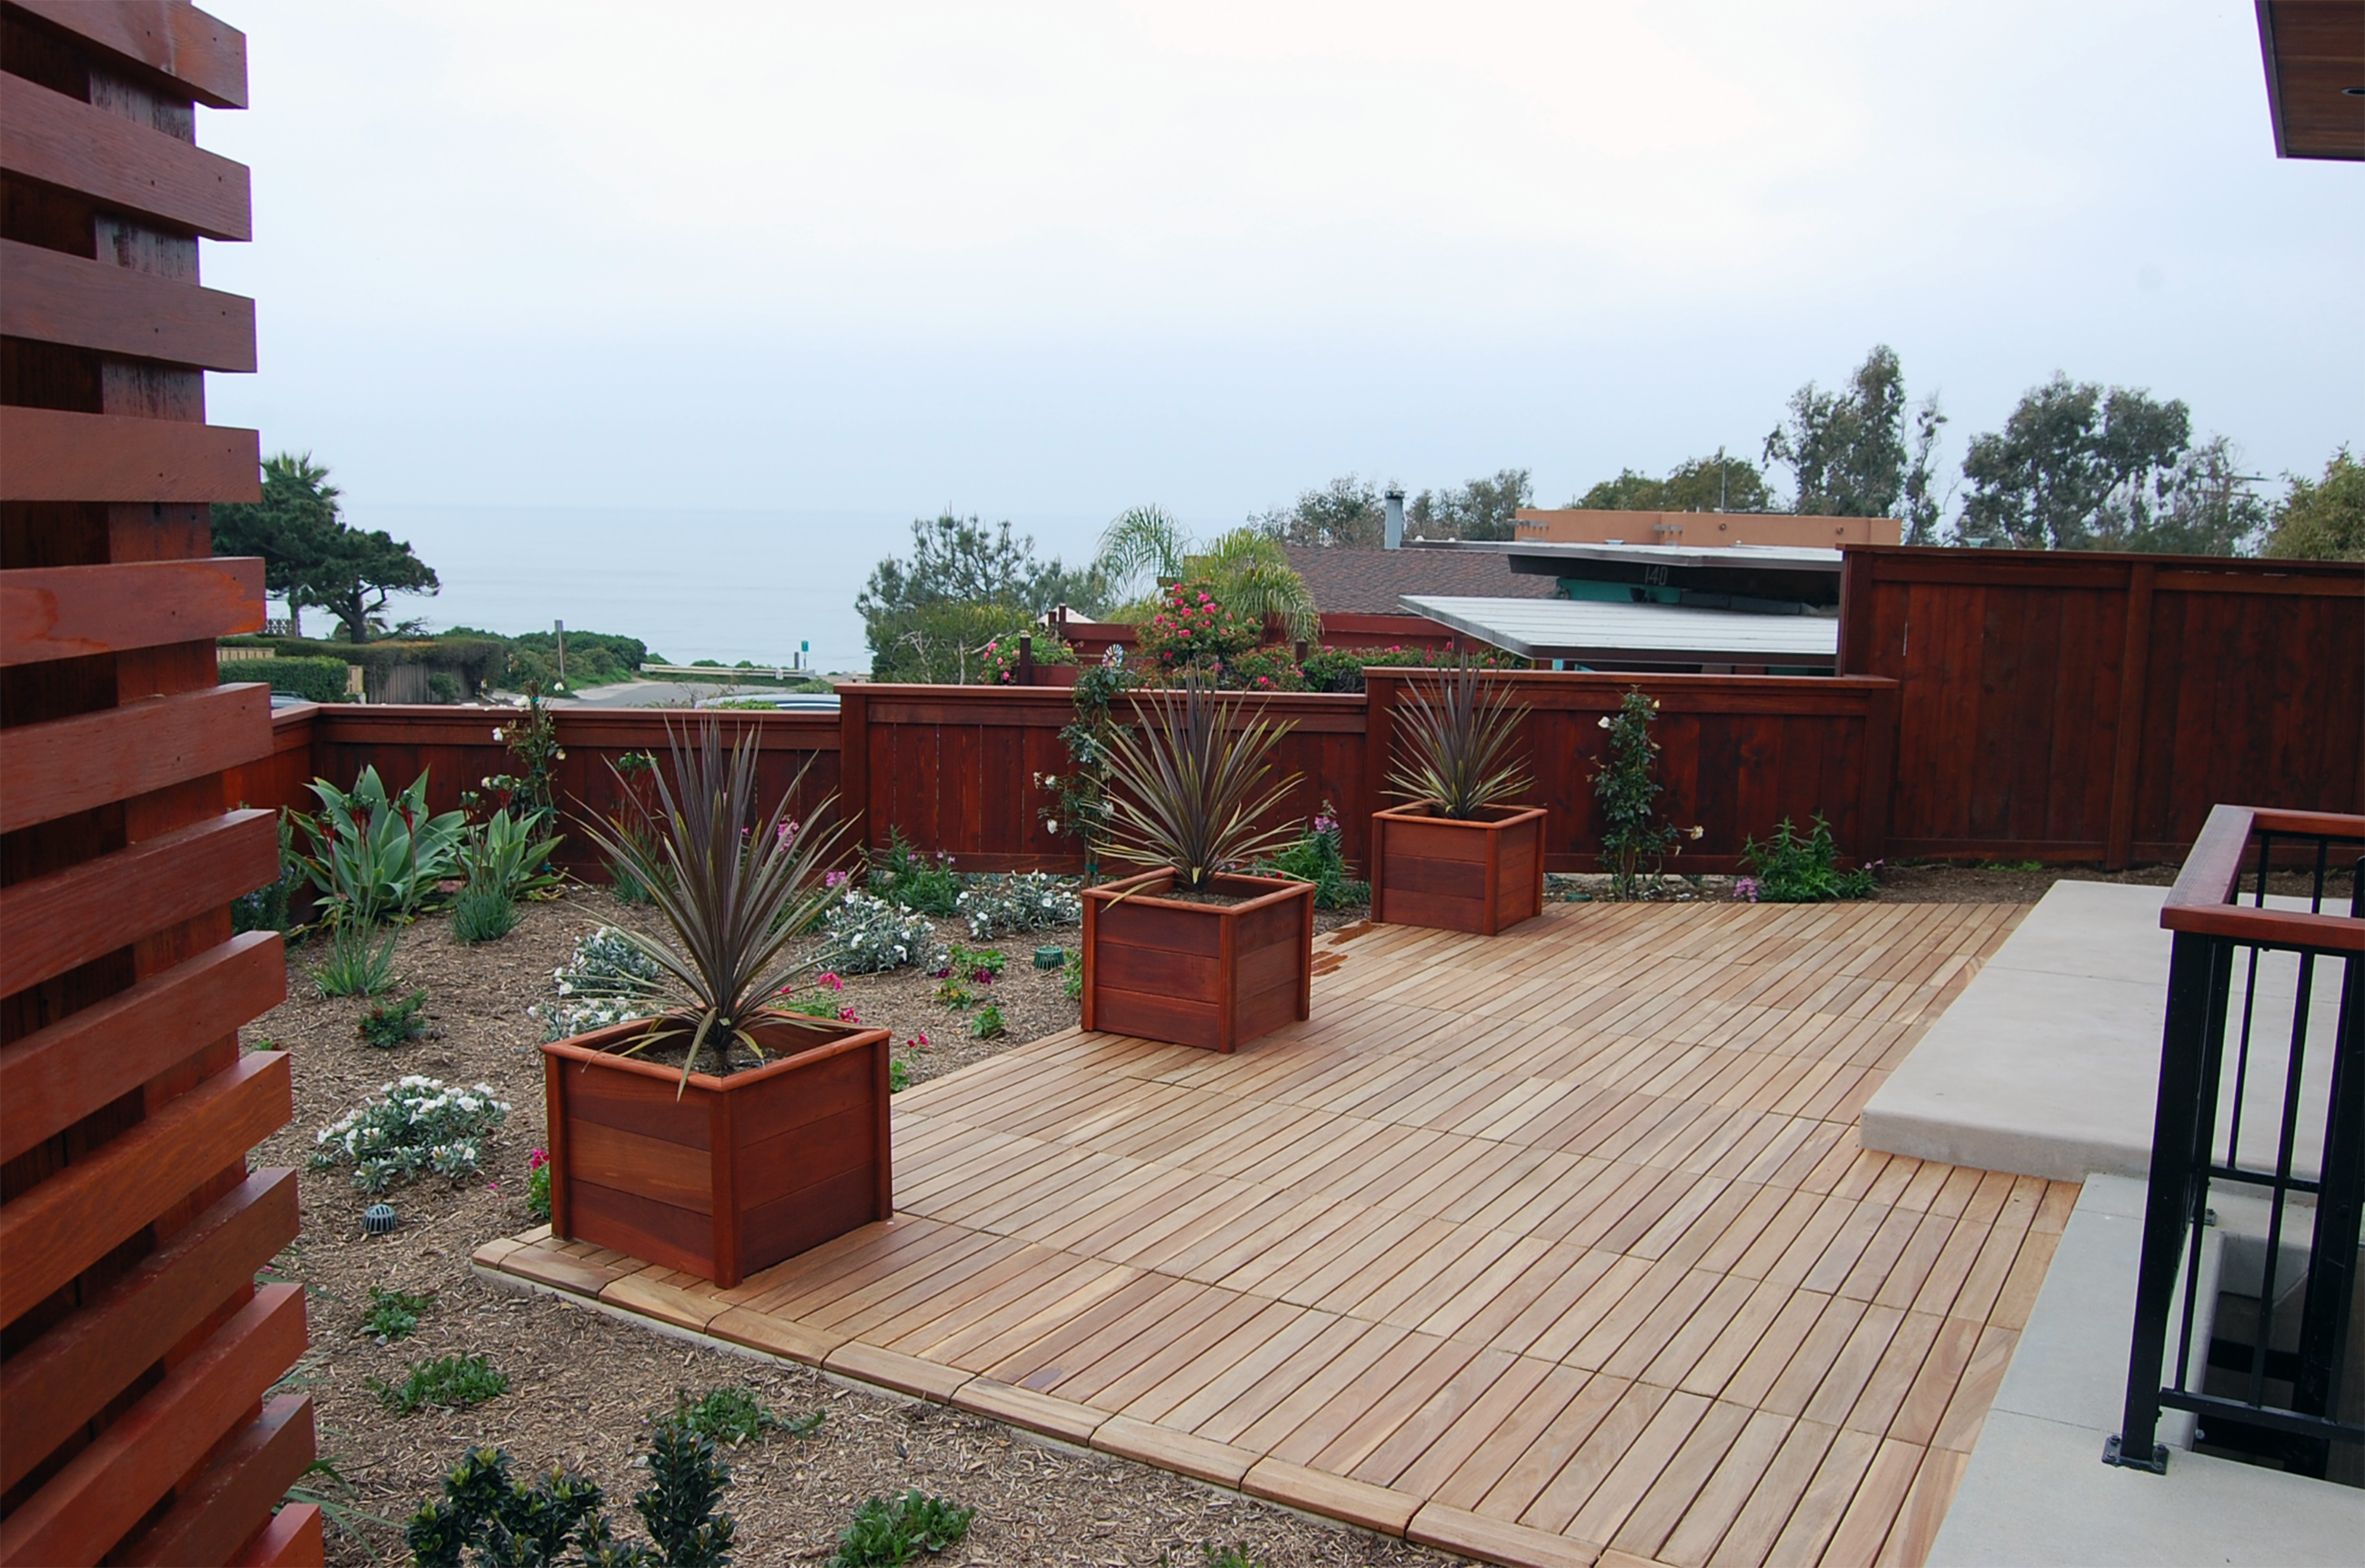 DesignApplause | ipe deck tile. eco arbor designs. on Wood Deck Ideas For Backyard id=29097